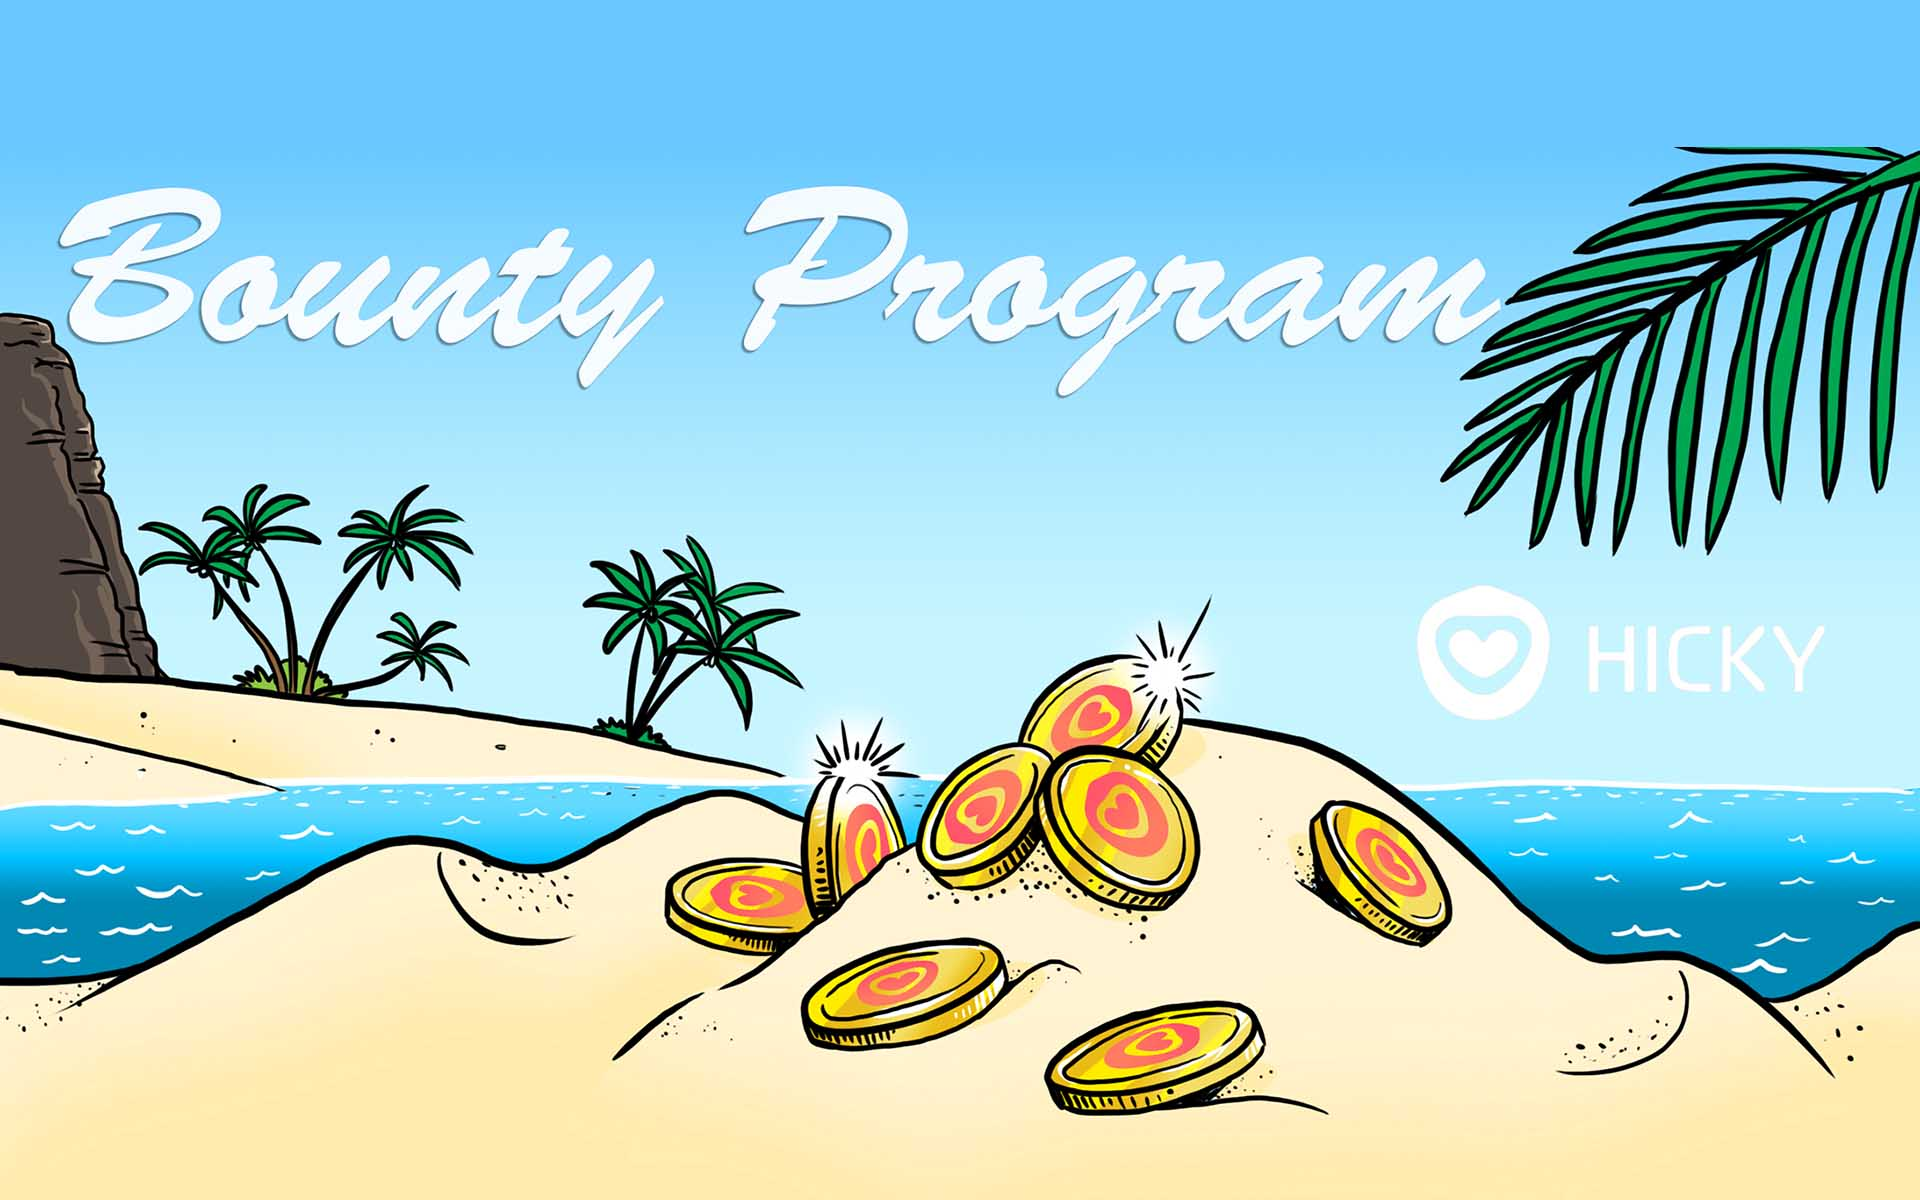 Hicky Team Announce Their Bounty Program